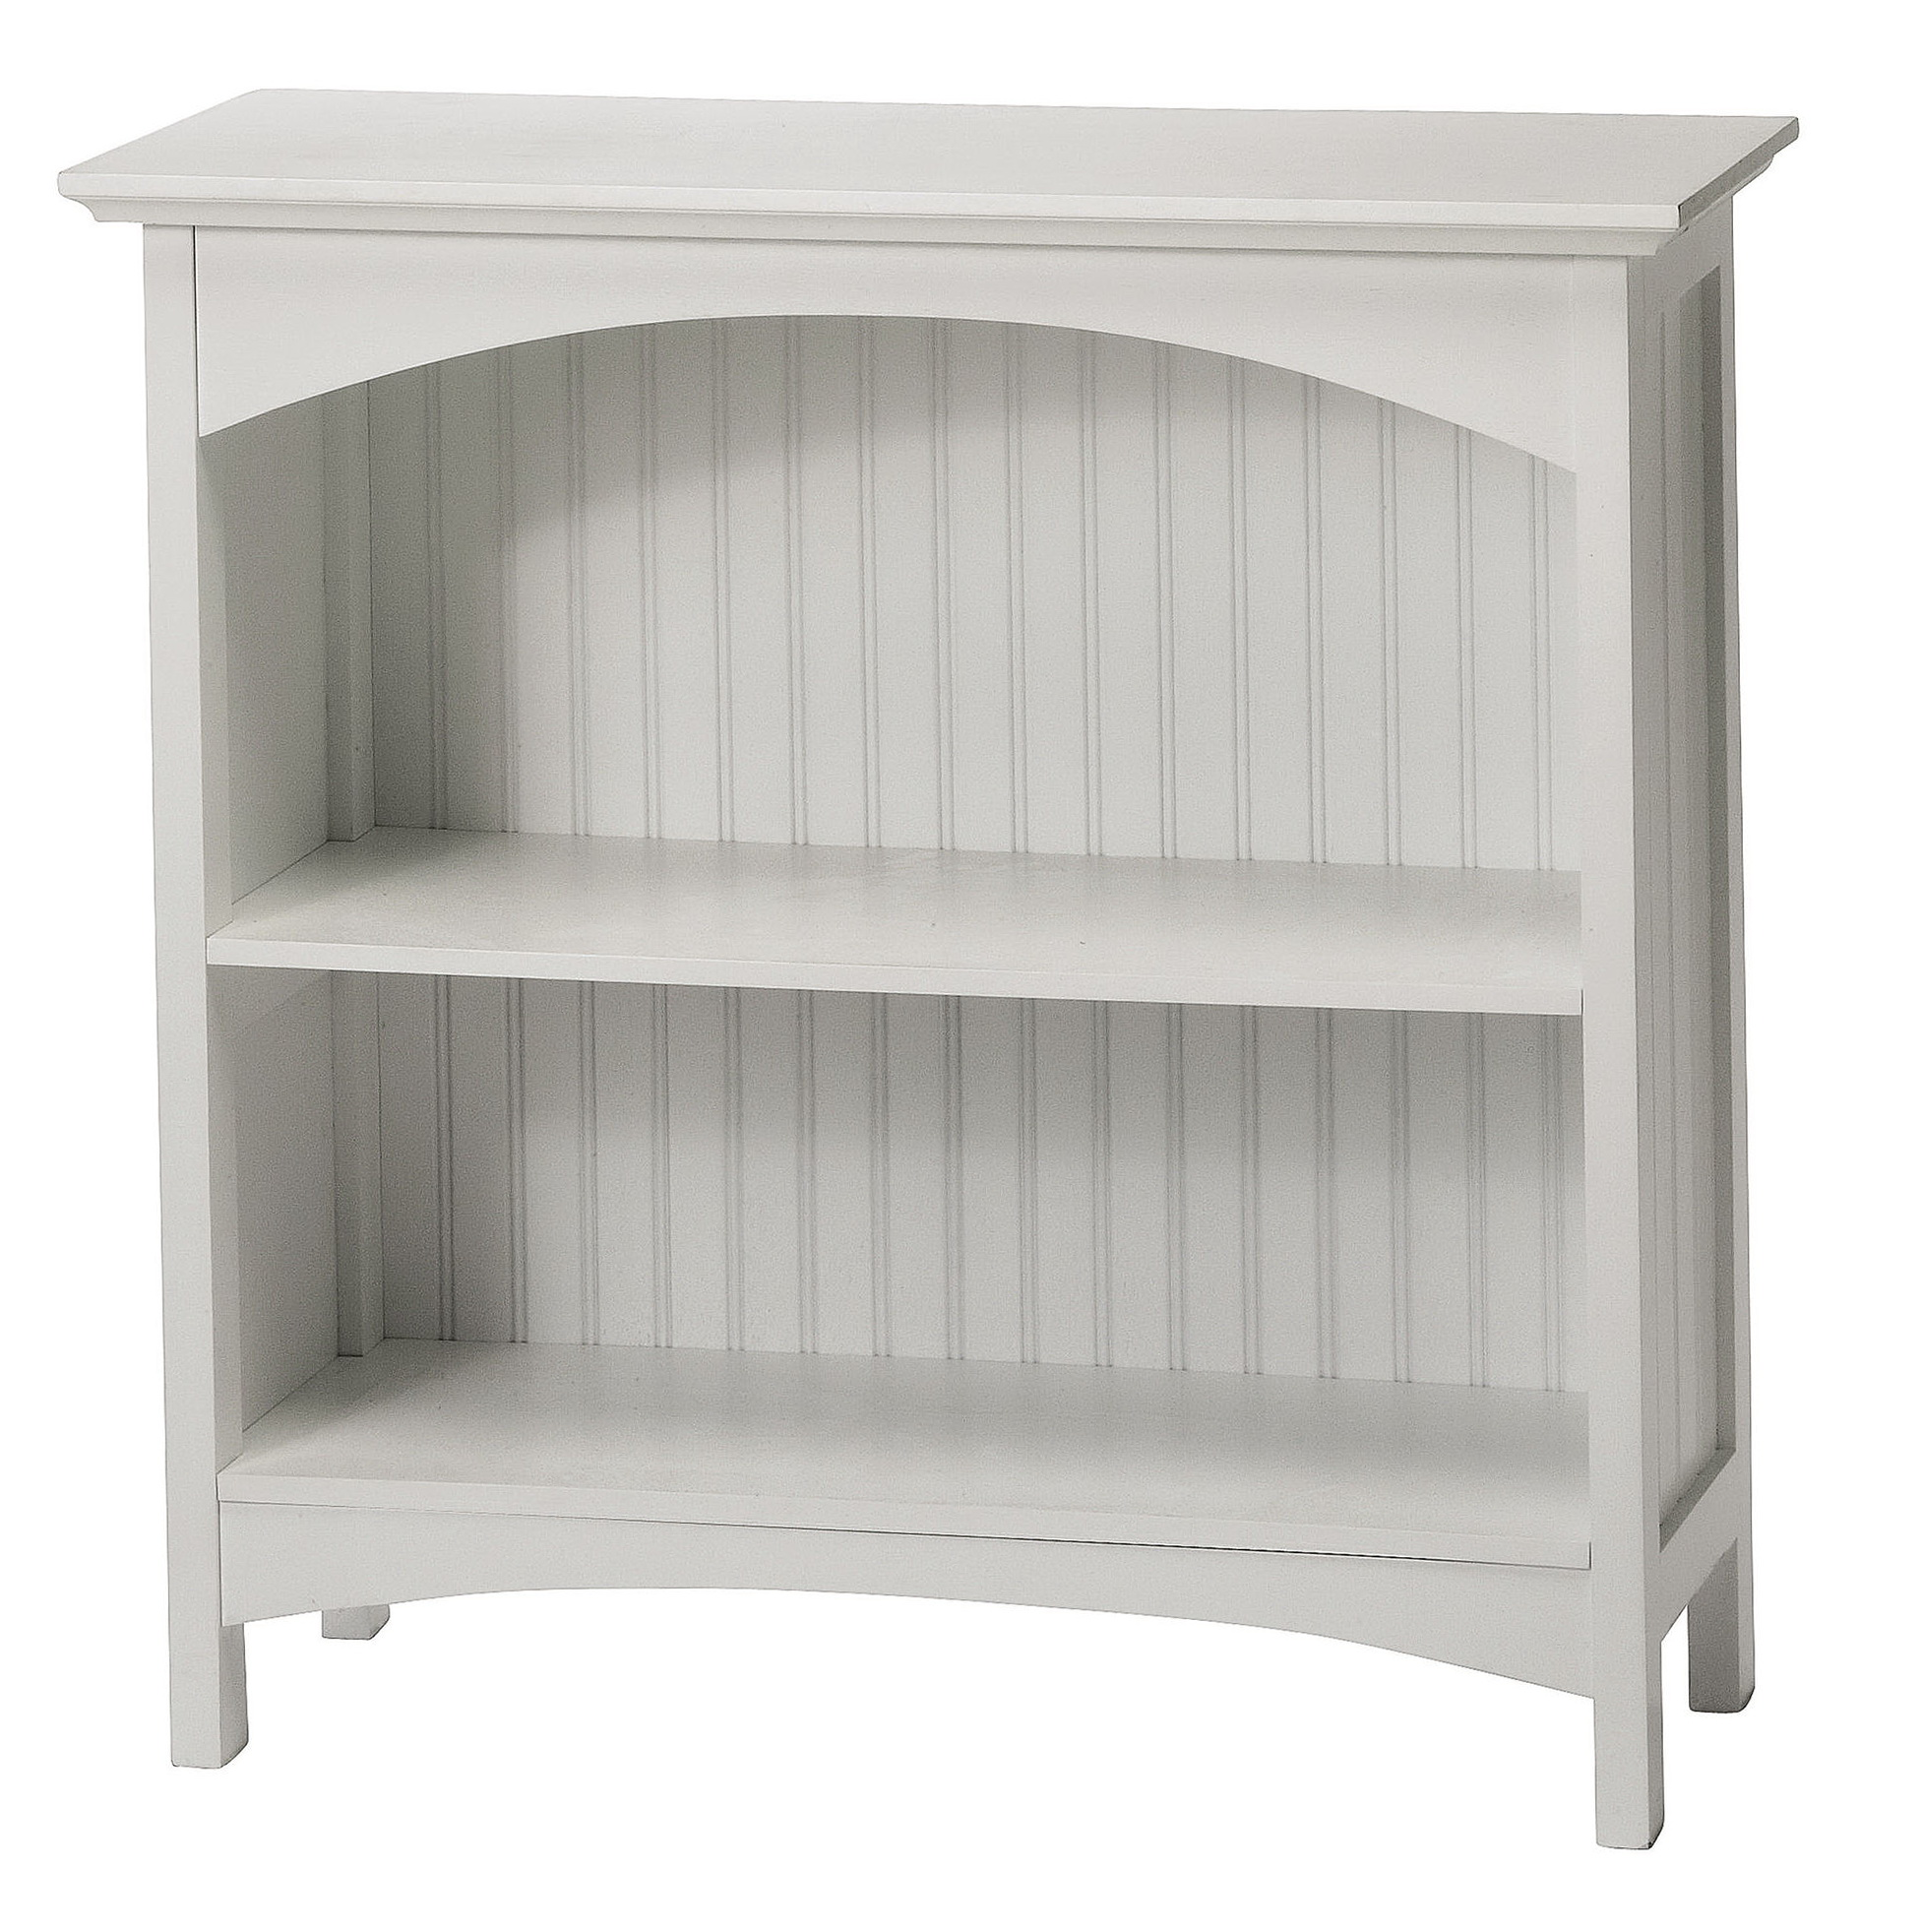 2 Shelf Bookcase White